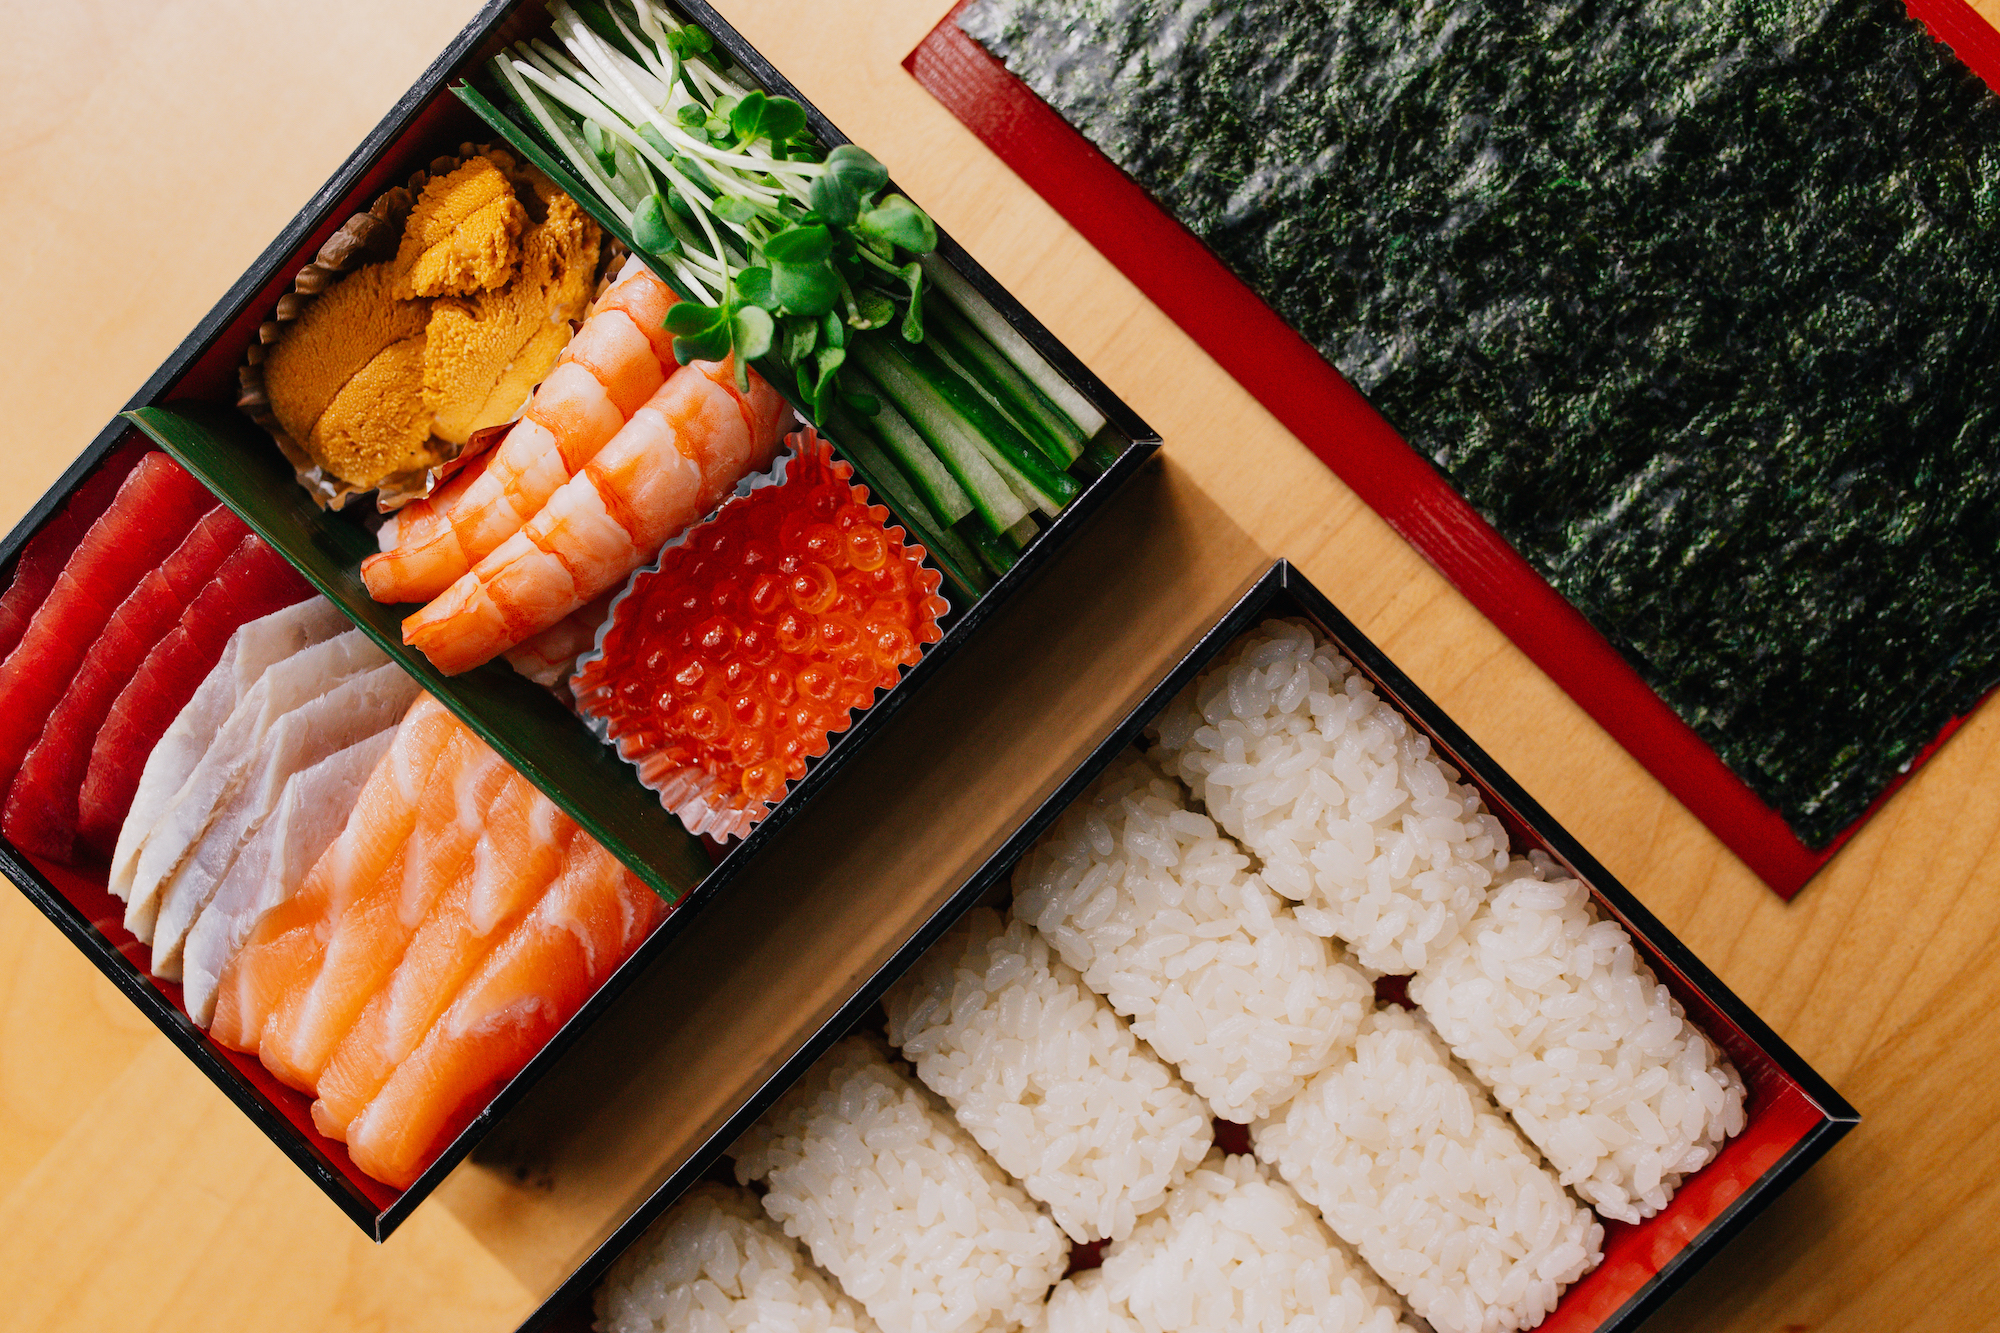 From above, a shot of sushi takeout in a box, with nori and rice on the side.